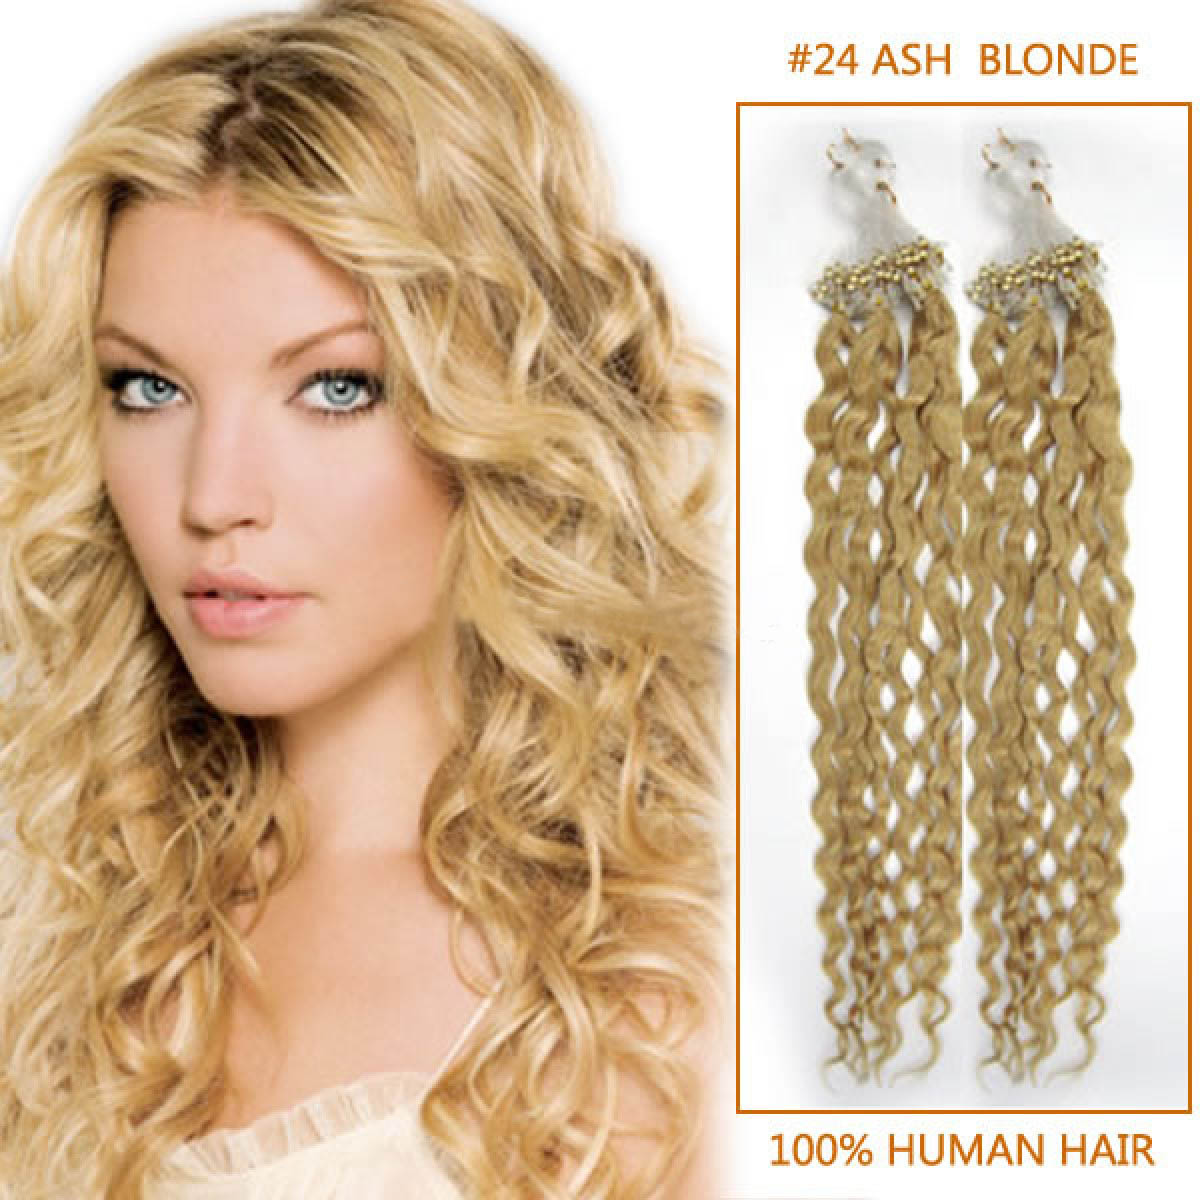 24 Inch Lustrous 24 Ash Blonde Curly Micro Loop Hair Extensions 100